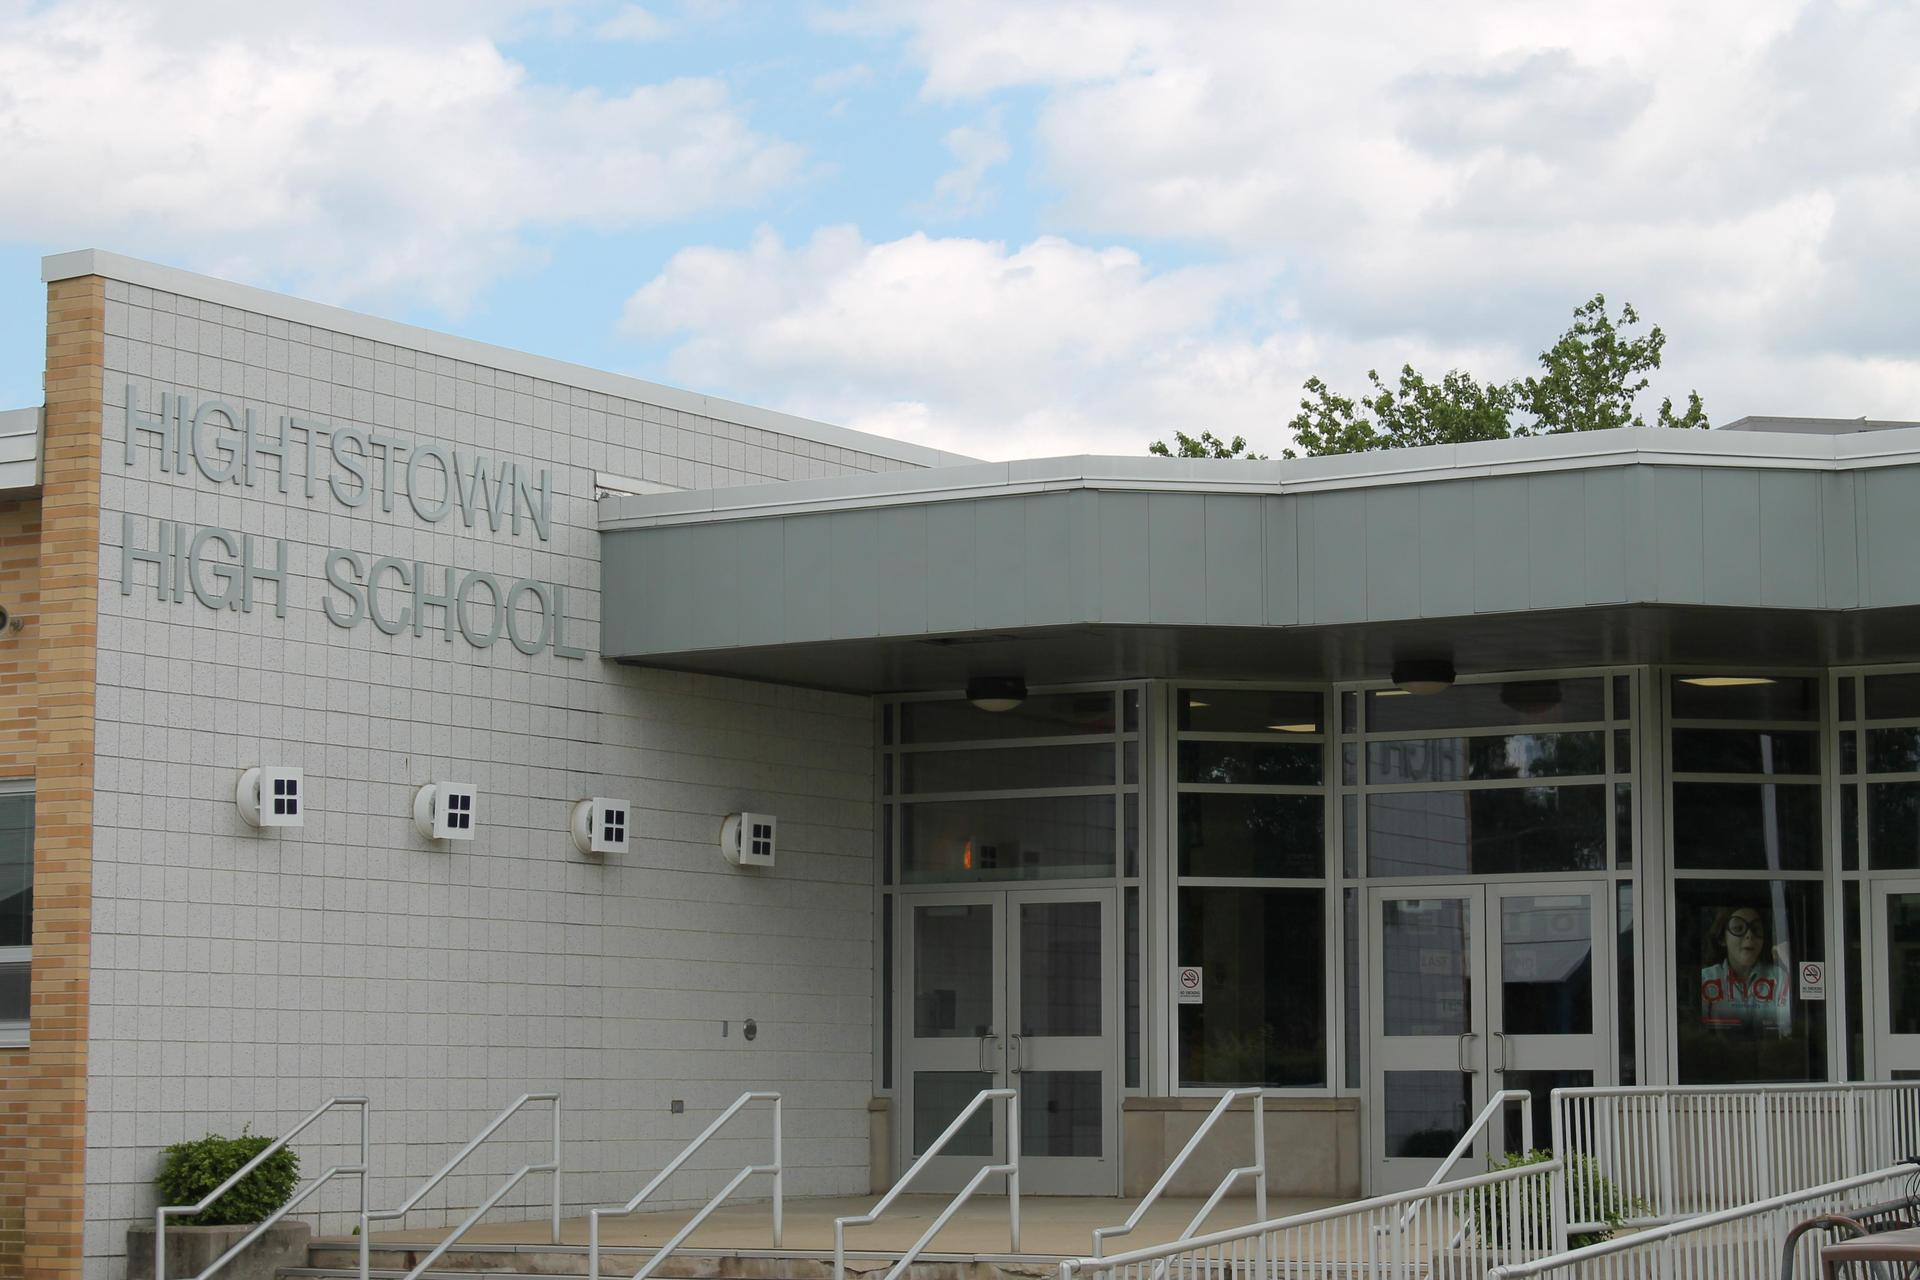 Hightstown High School